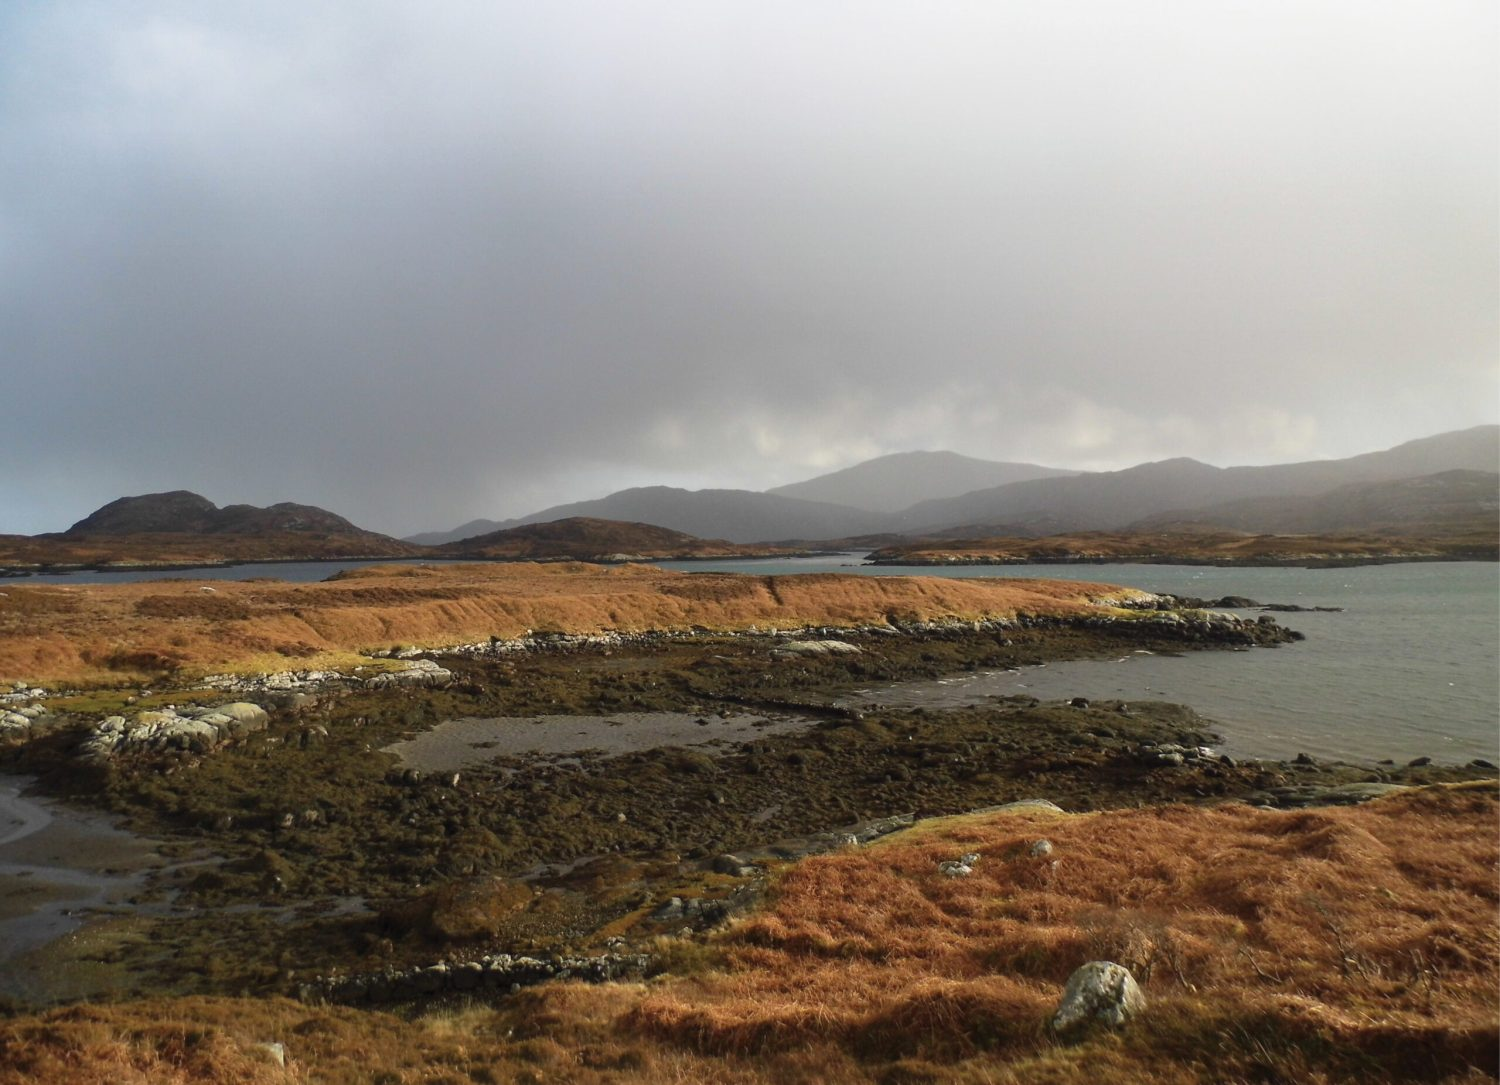 BELOW Signs of human activity are visible all over the lochside. A small landing place is visible in the foreground while a cairidh, or fish-trap, is visible in the centre. The remains of feannagan, or cultivation ridges, can be seen on the rising ground in the centre. The kelp industry influenced dramatic social change on the islands, with traditional subsistence townships being replaced by kelpers' houses and bothies, before the whole area was abandoned to grazing within just one or two generations.